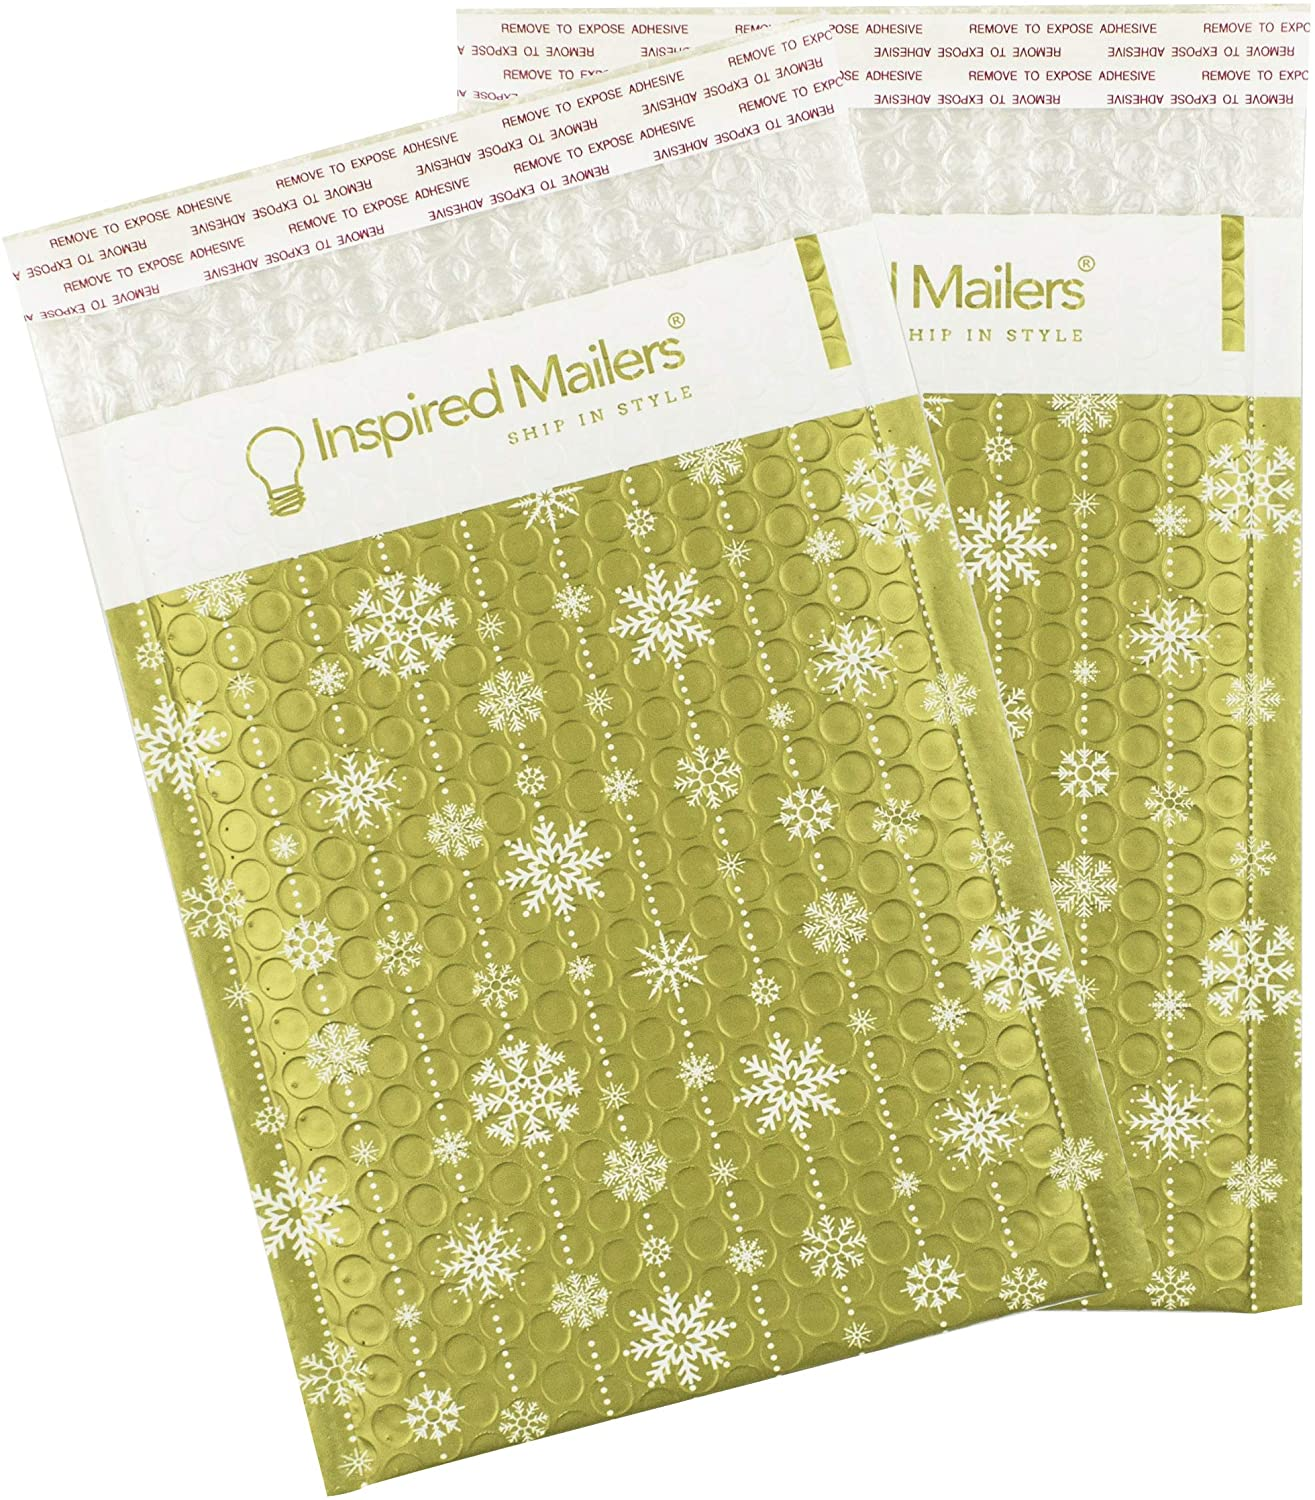 Inspired Mailers - Bubble Mailers 6x9 (Writable Area) - Golden Winter Snowflakes - Holiday Bubble Envelopes 6x9 - Small Padded Envelopes (6x9, 10 Pack)